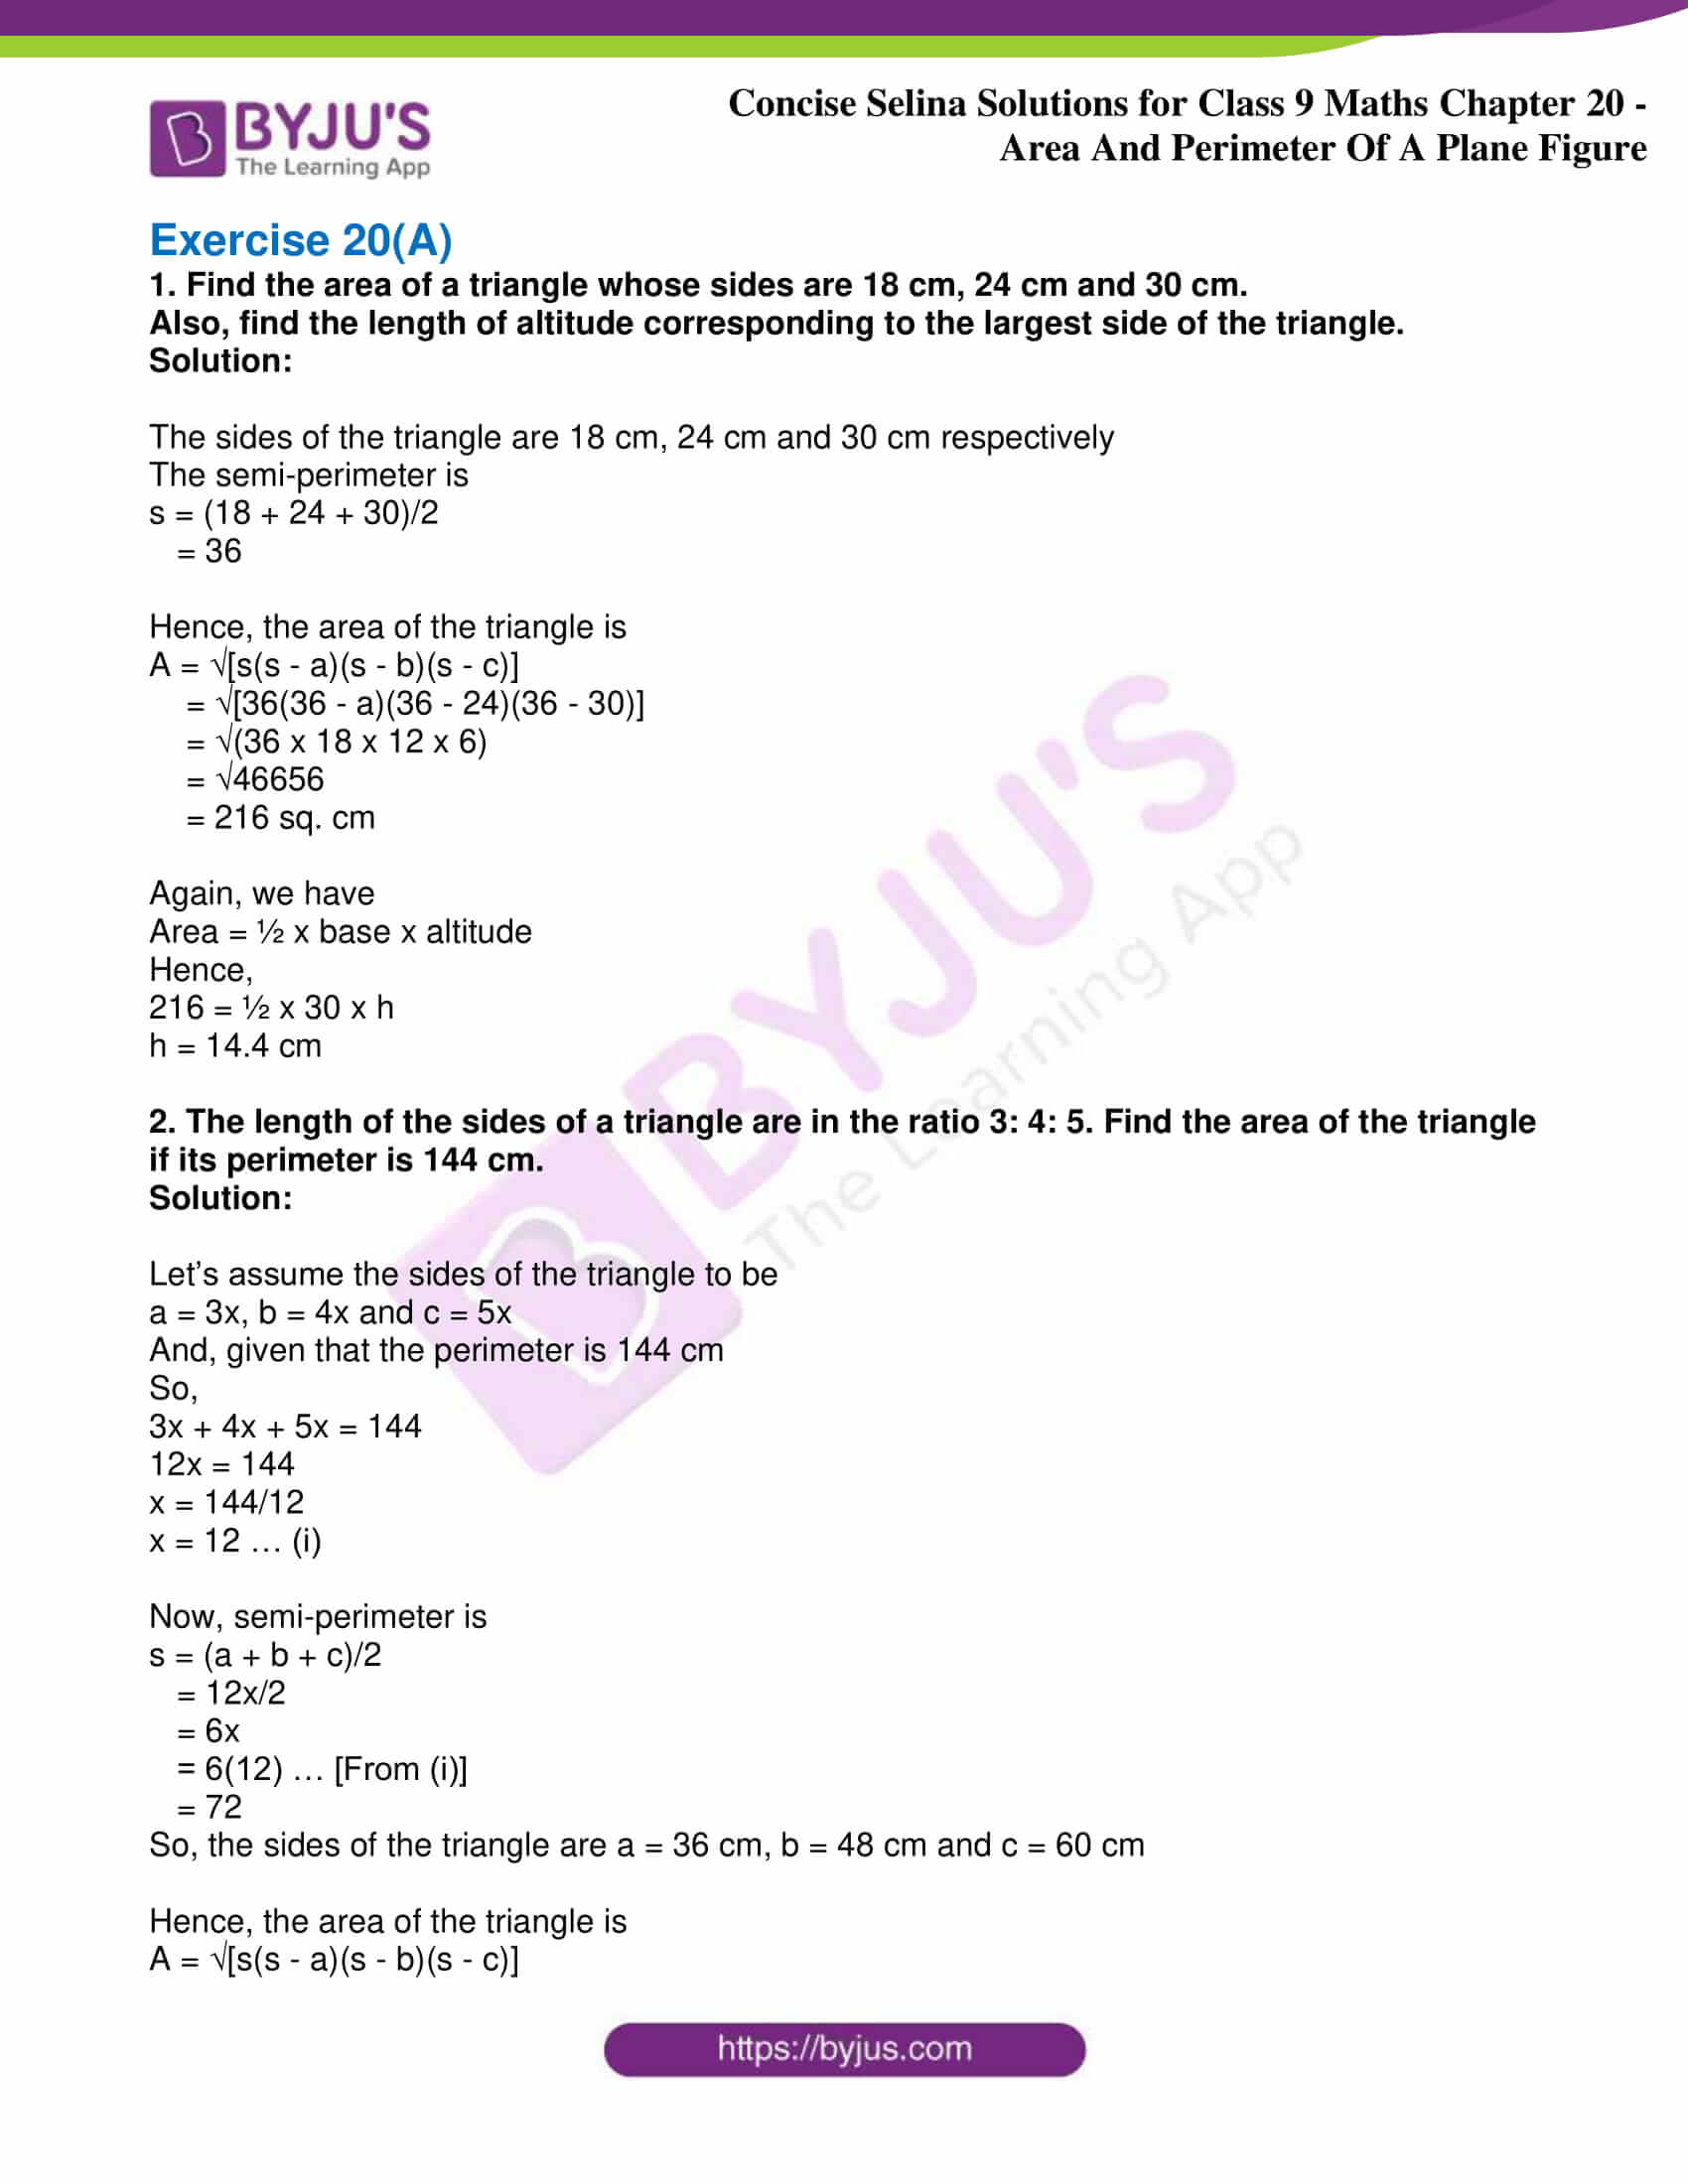 icse class 9 jun9 maths selina solutions chapter 20 area and perimeter of a plane figure 01